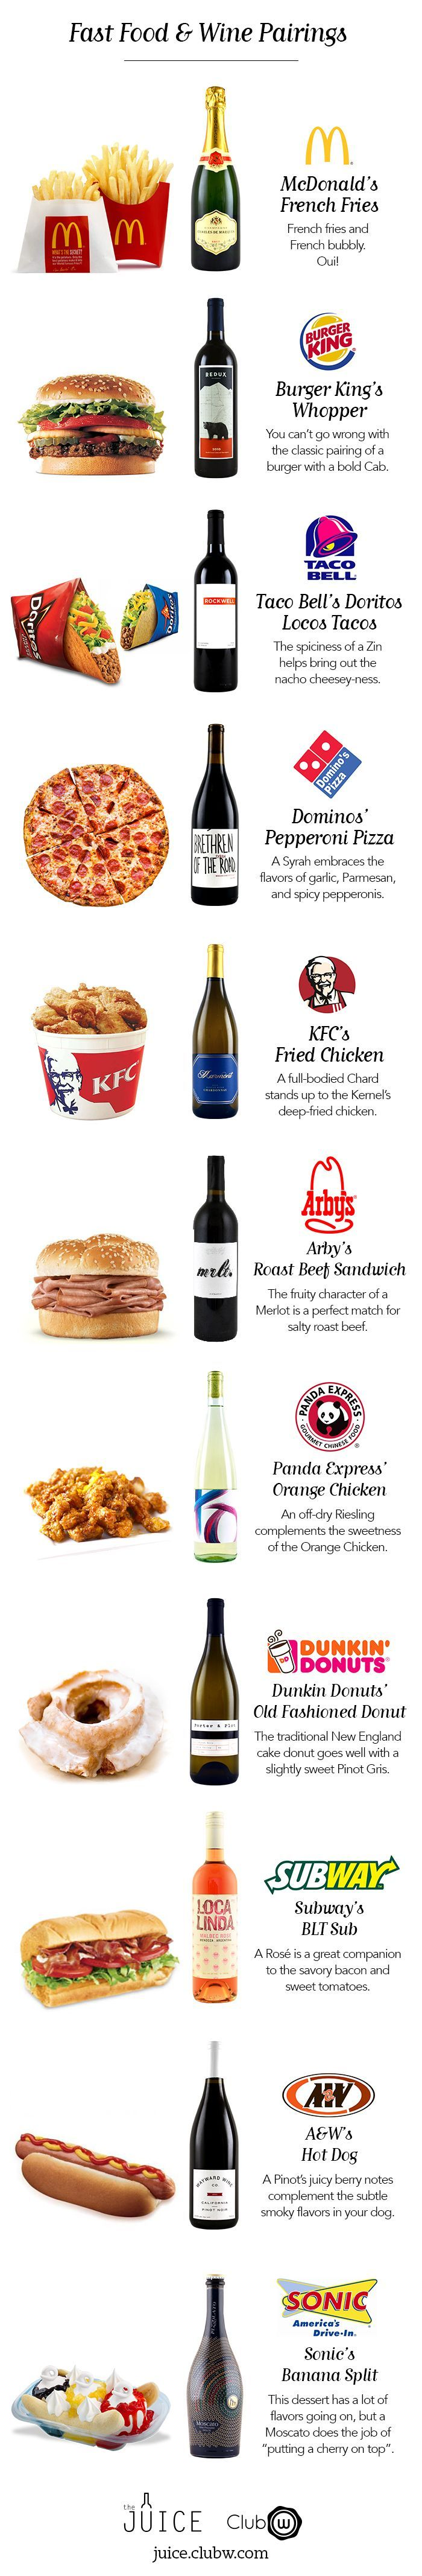 Wine Pairing Guide: Fast Food - It's just so wrong...